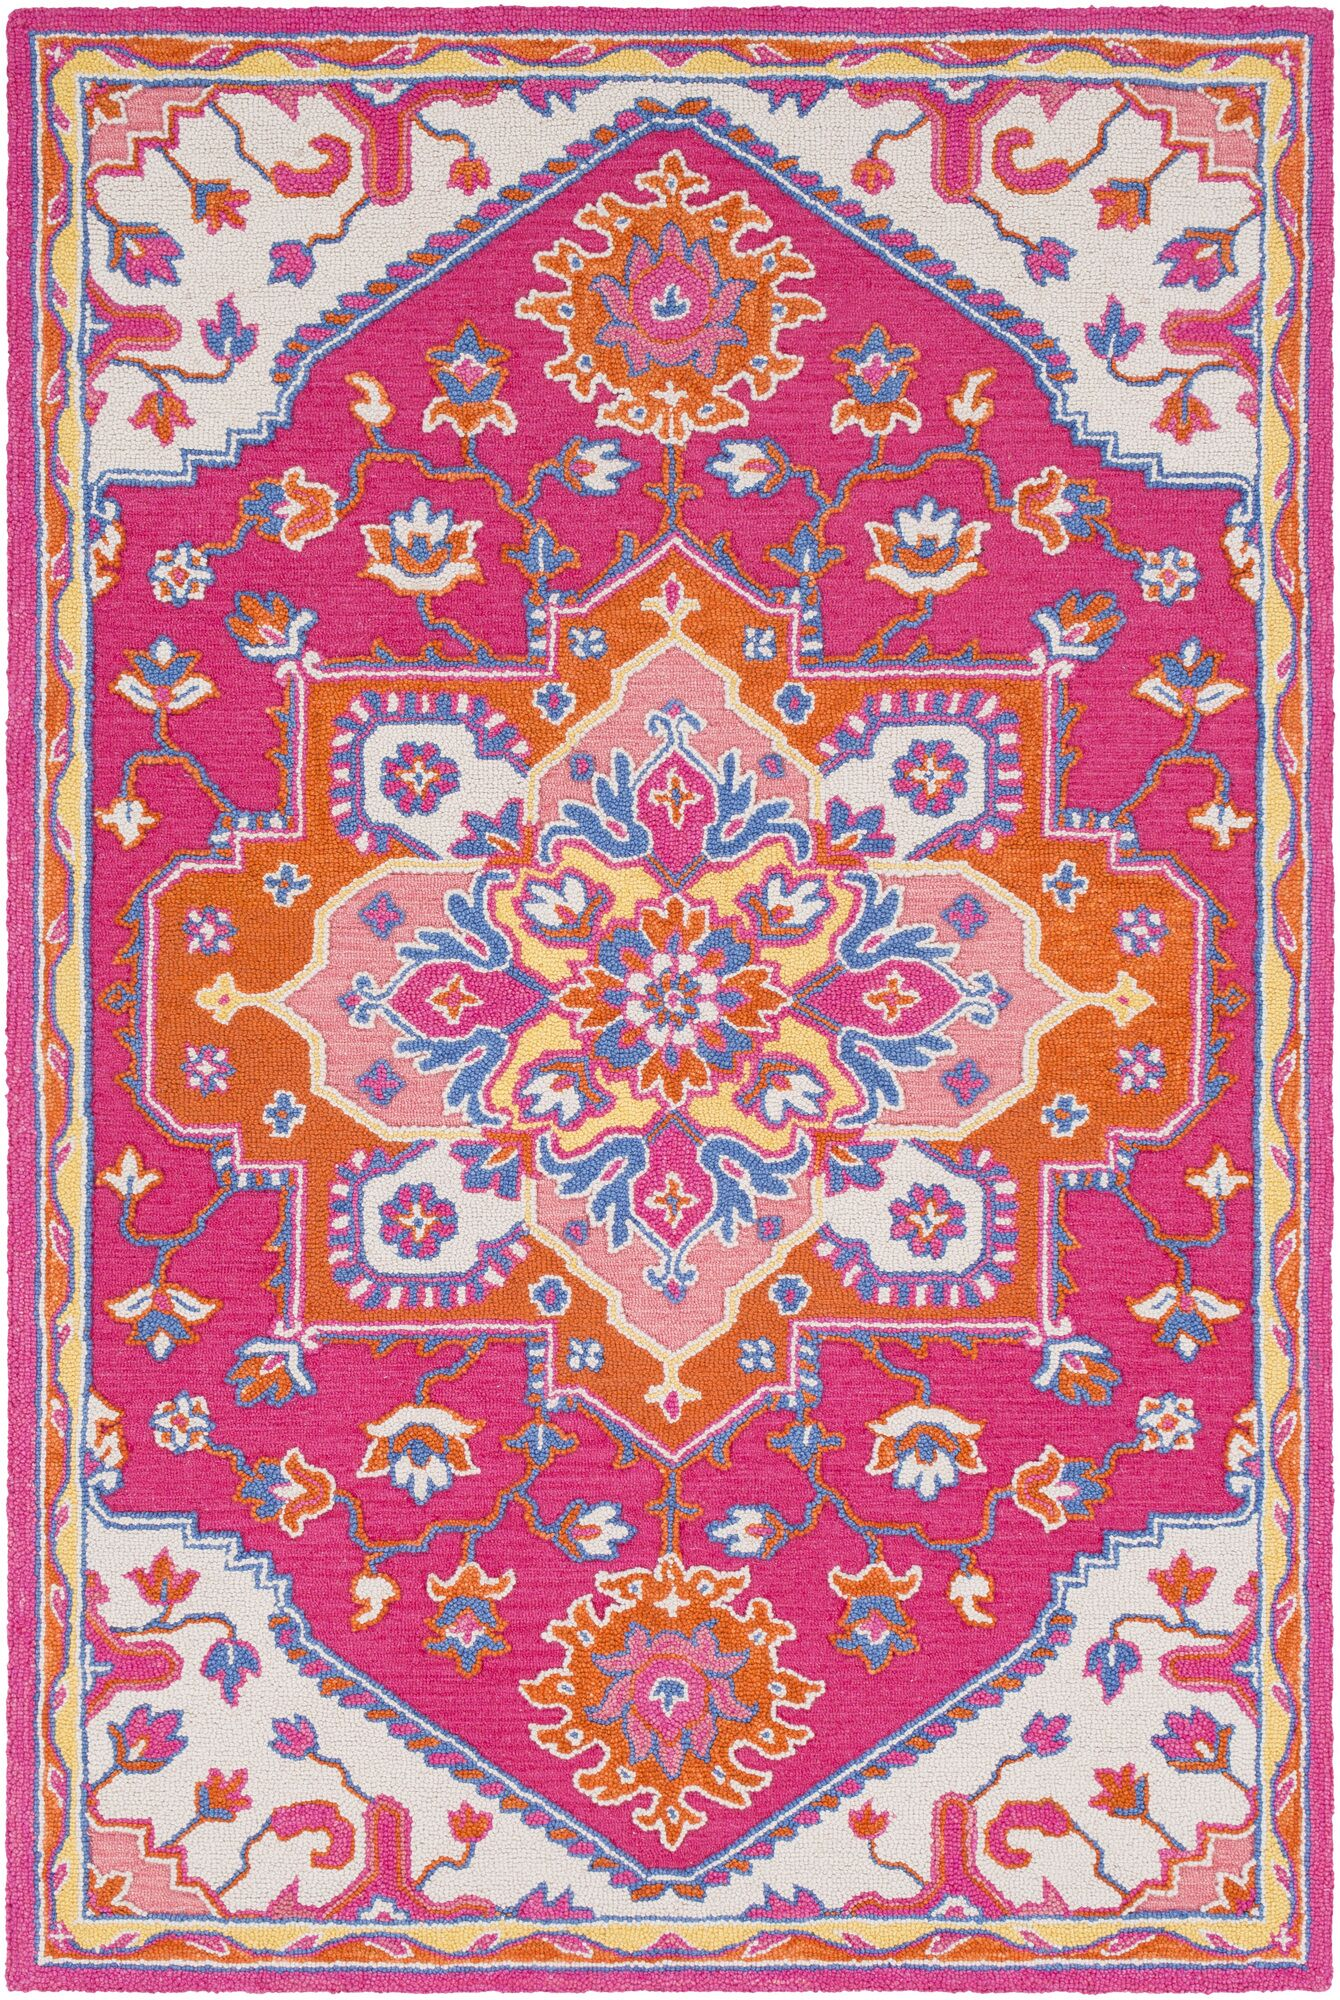 Withams Hand Tufted Wool Bright Pink/Bright Orange Area Rug Rug Size: Rectangle 8' x 10'